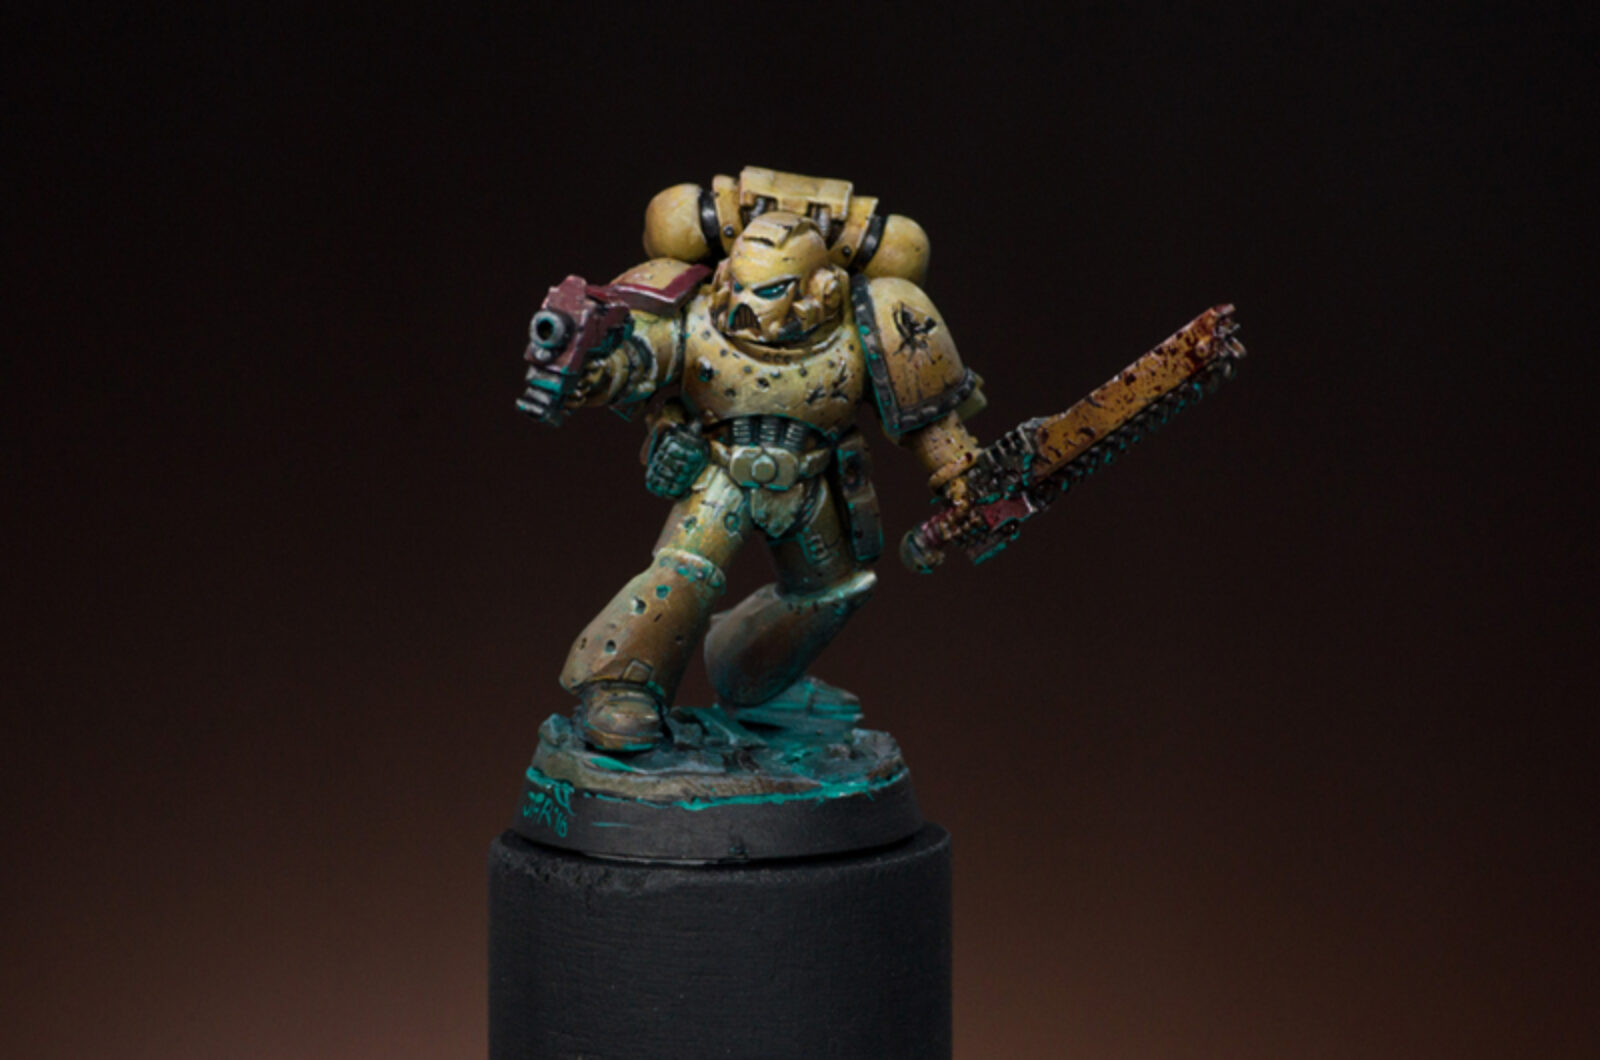 Imperial Fist02